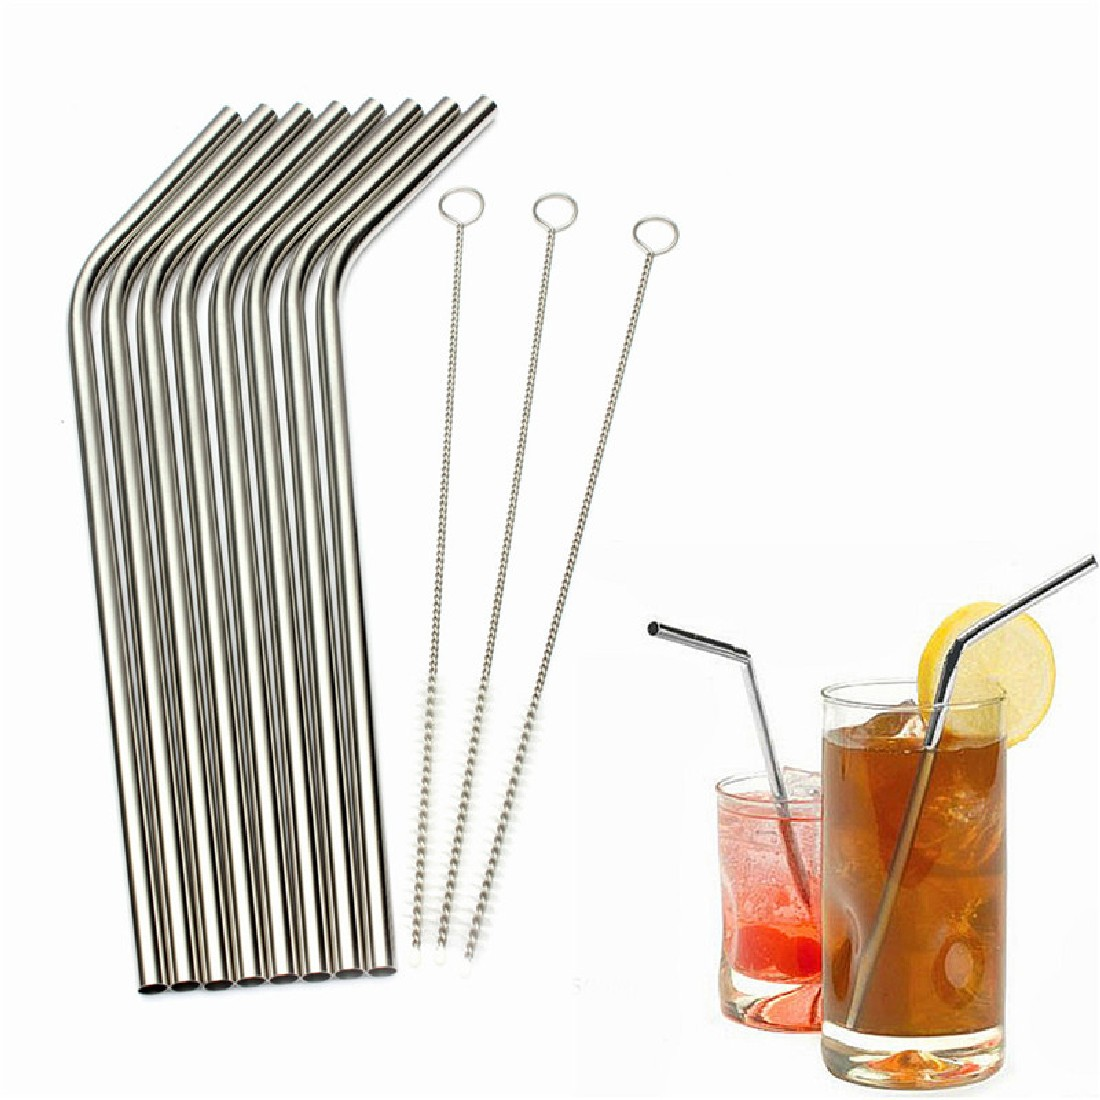 Well sale 8Pcs High Quality Eco Friendly Stainless Steel Metal Straw Drinking Straw Reusable Straws Cleaner Brush Set